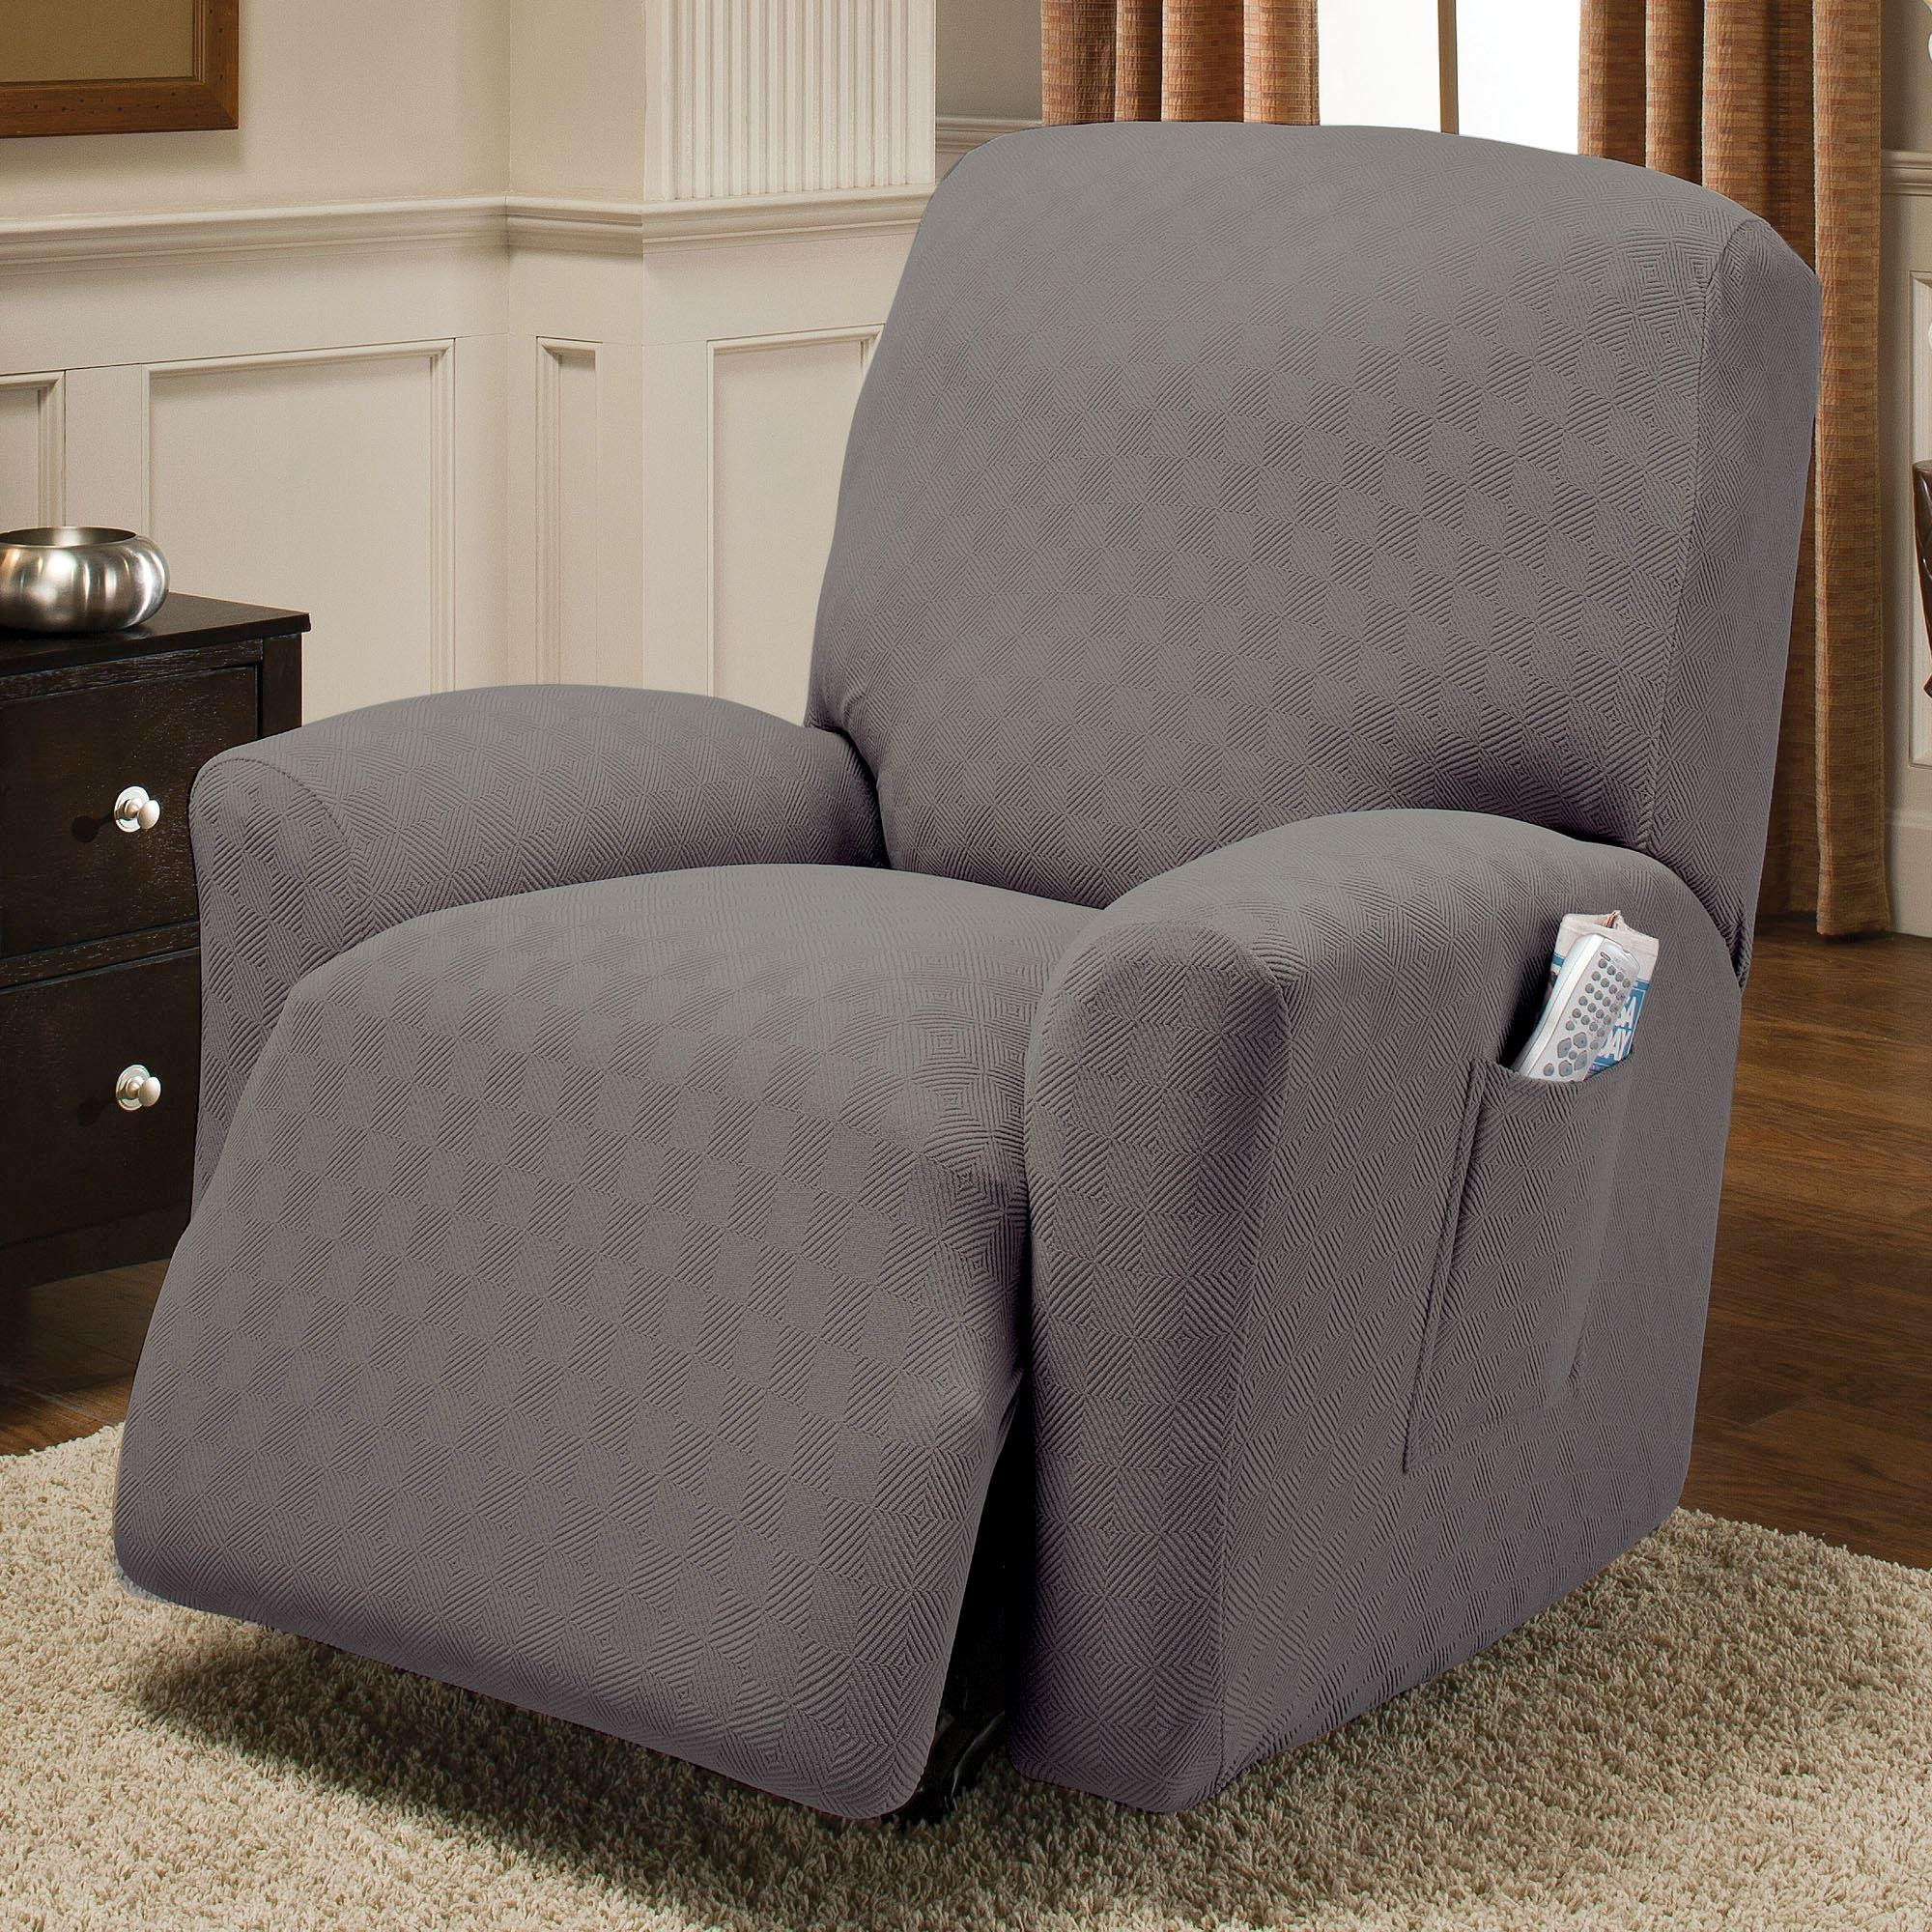 Newport Stretch Jumbo Recliner Slipcovers for Stretch Covers For Recliners